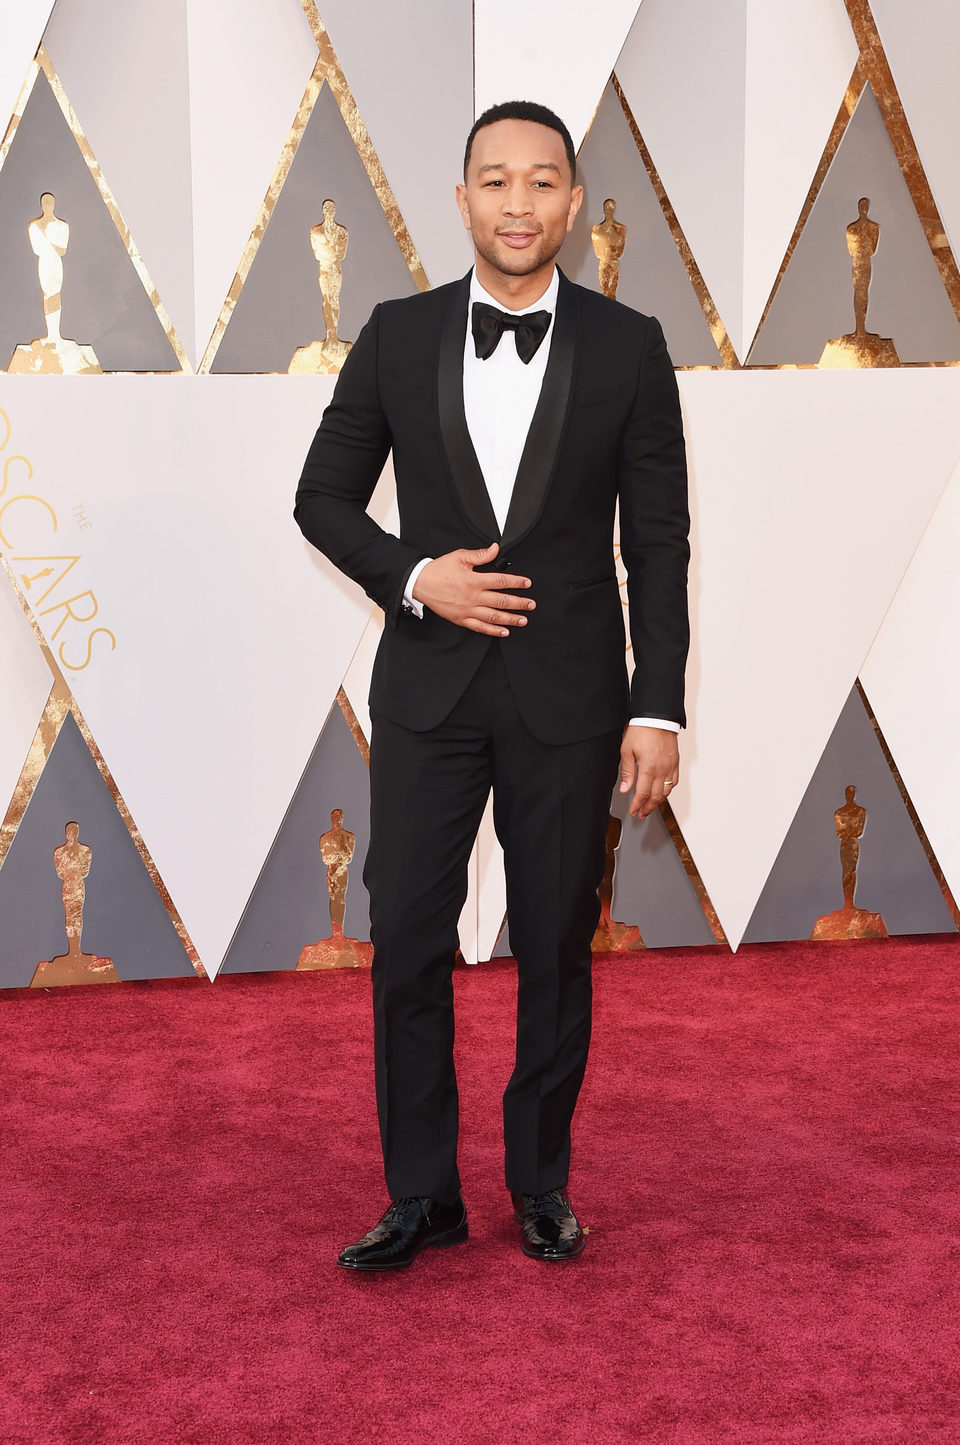 John Legend at the Oscars 2016 red carpet